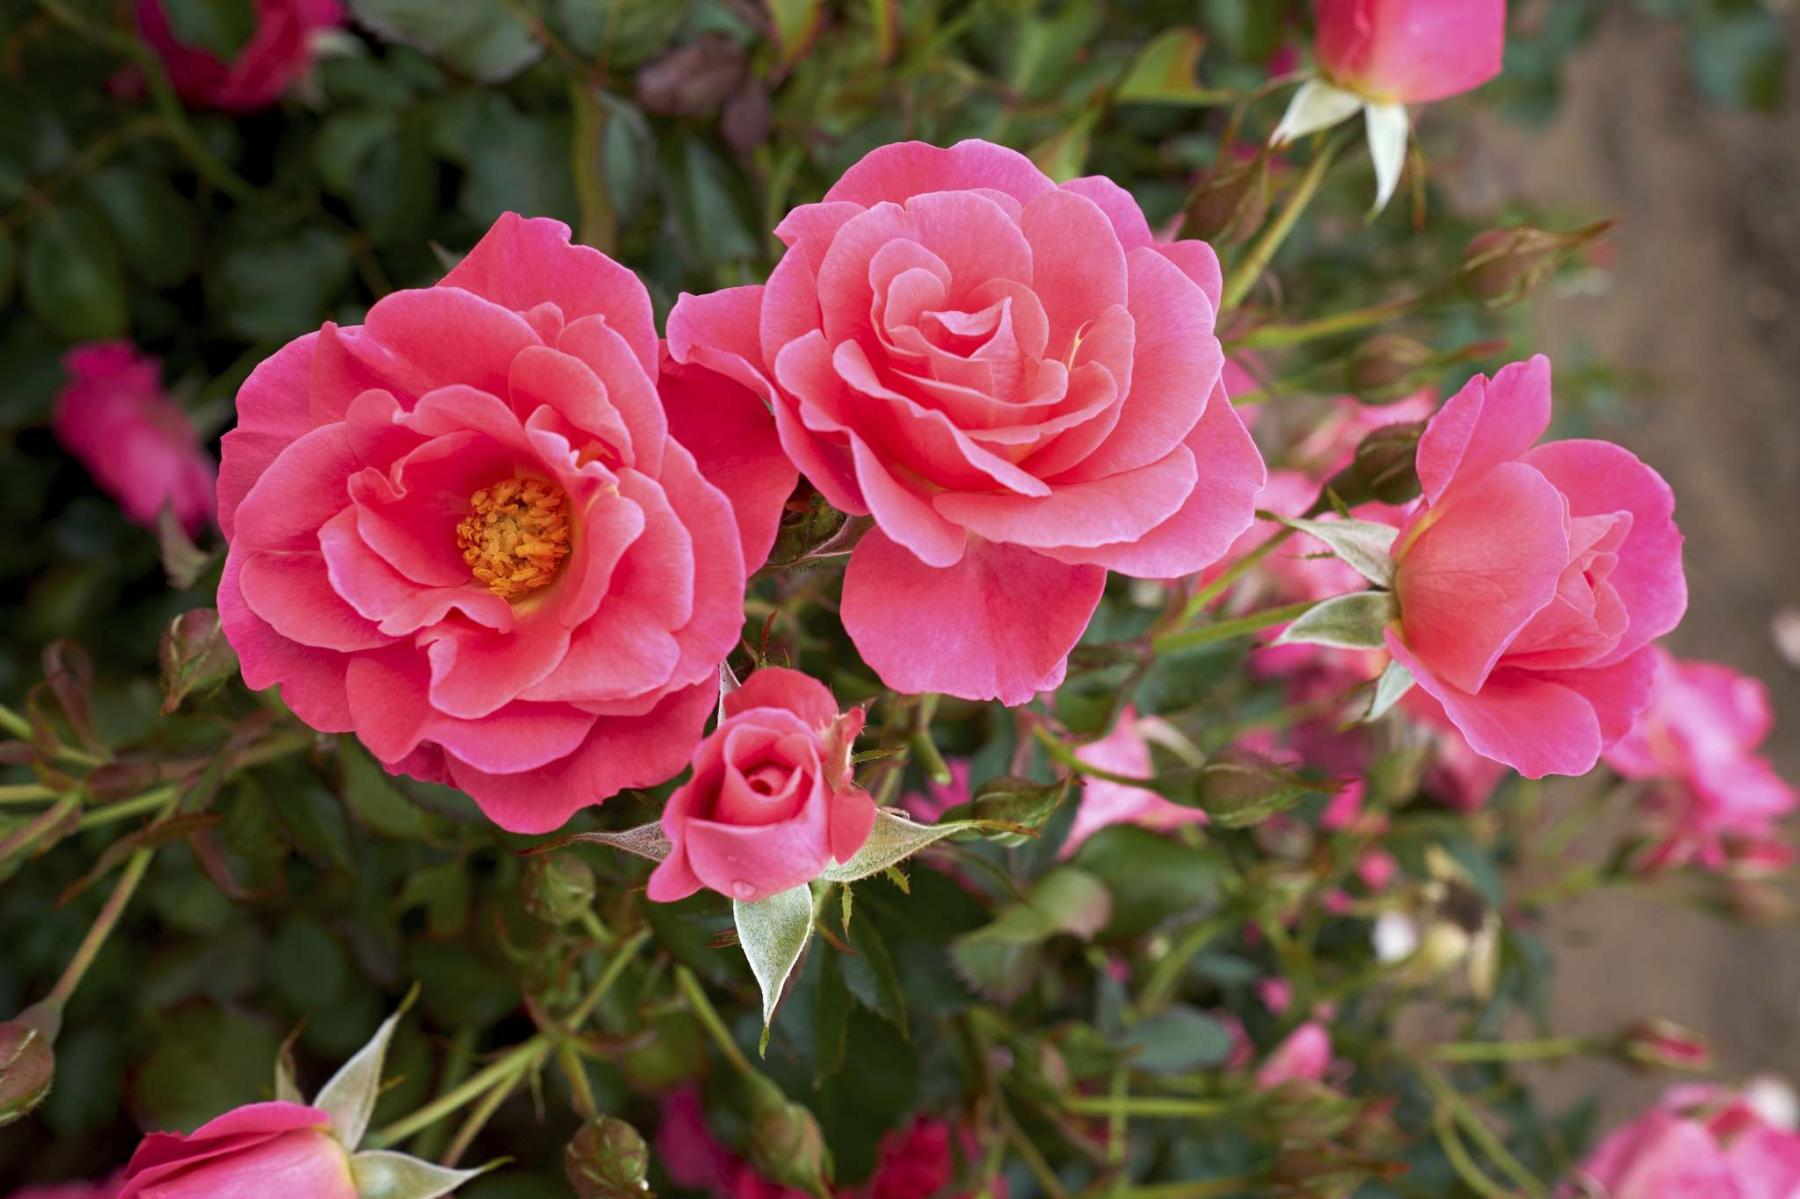 <p>Vineland Research and Innovation</p><p>Disease-resistant Aurora Borealis, new for 2021, is an excellent choice for a sustainable rose garden.</p></p>